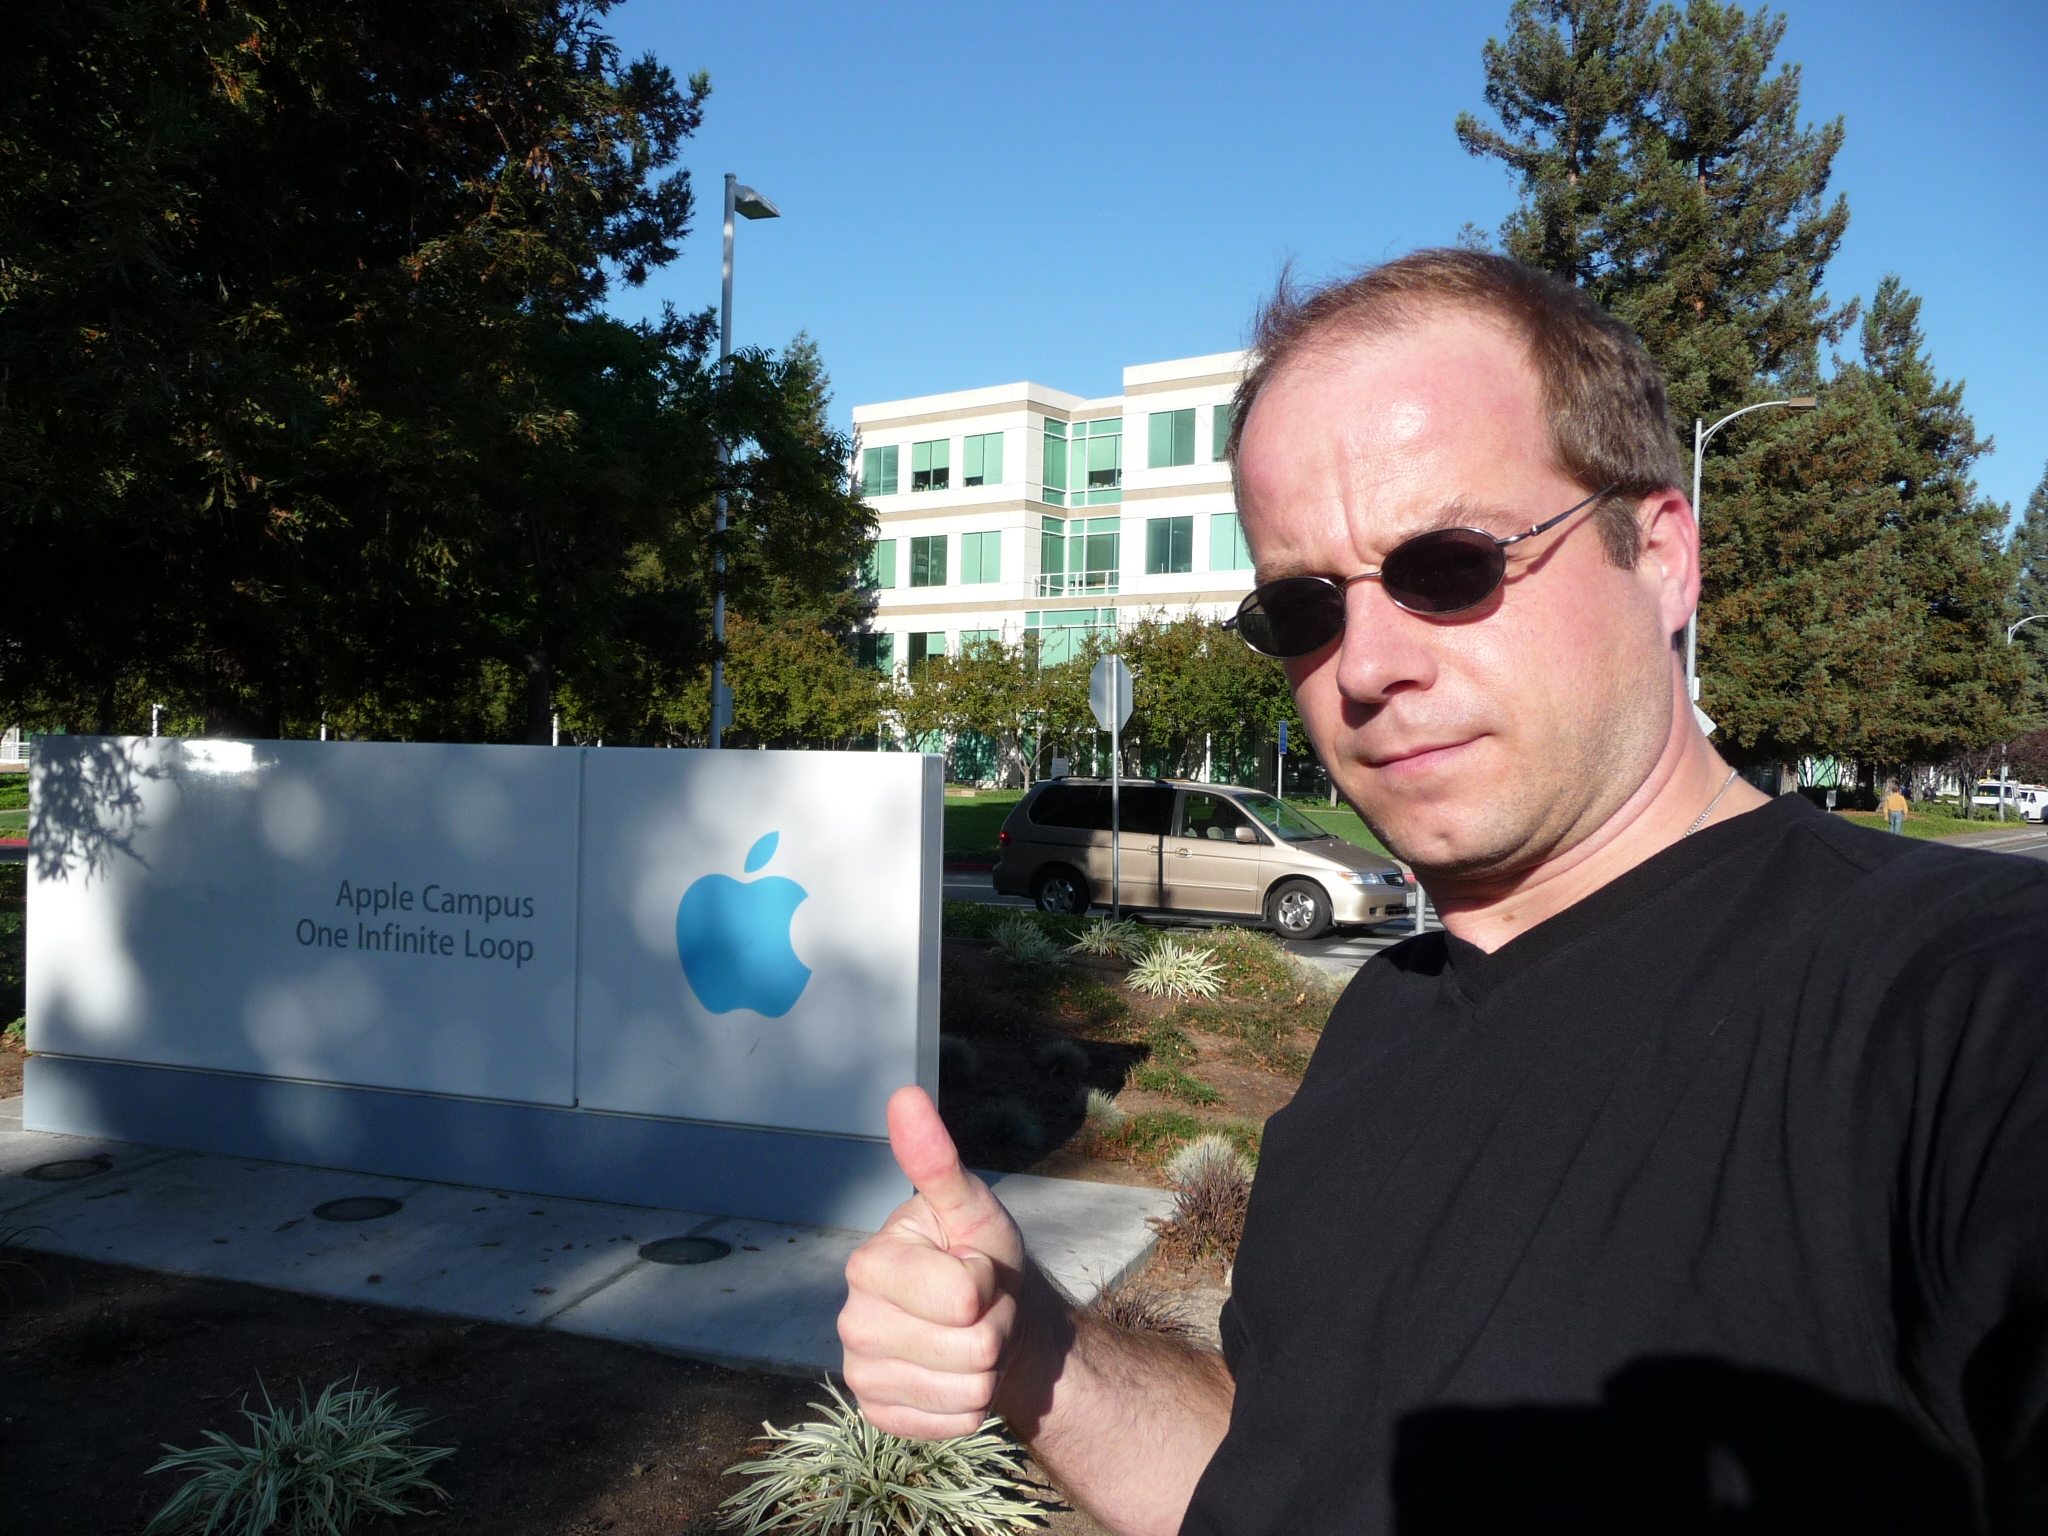 CoDriverJames at APPLE mothership in Cupertino, Silicon Valley, CA